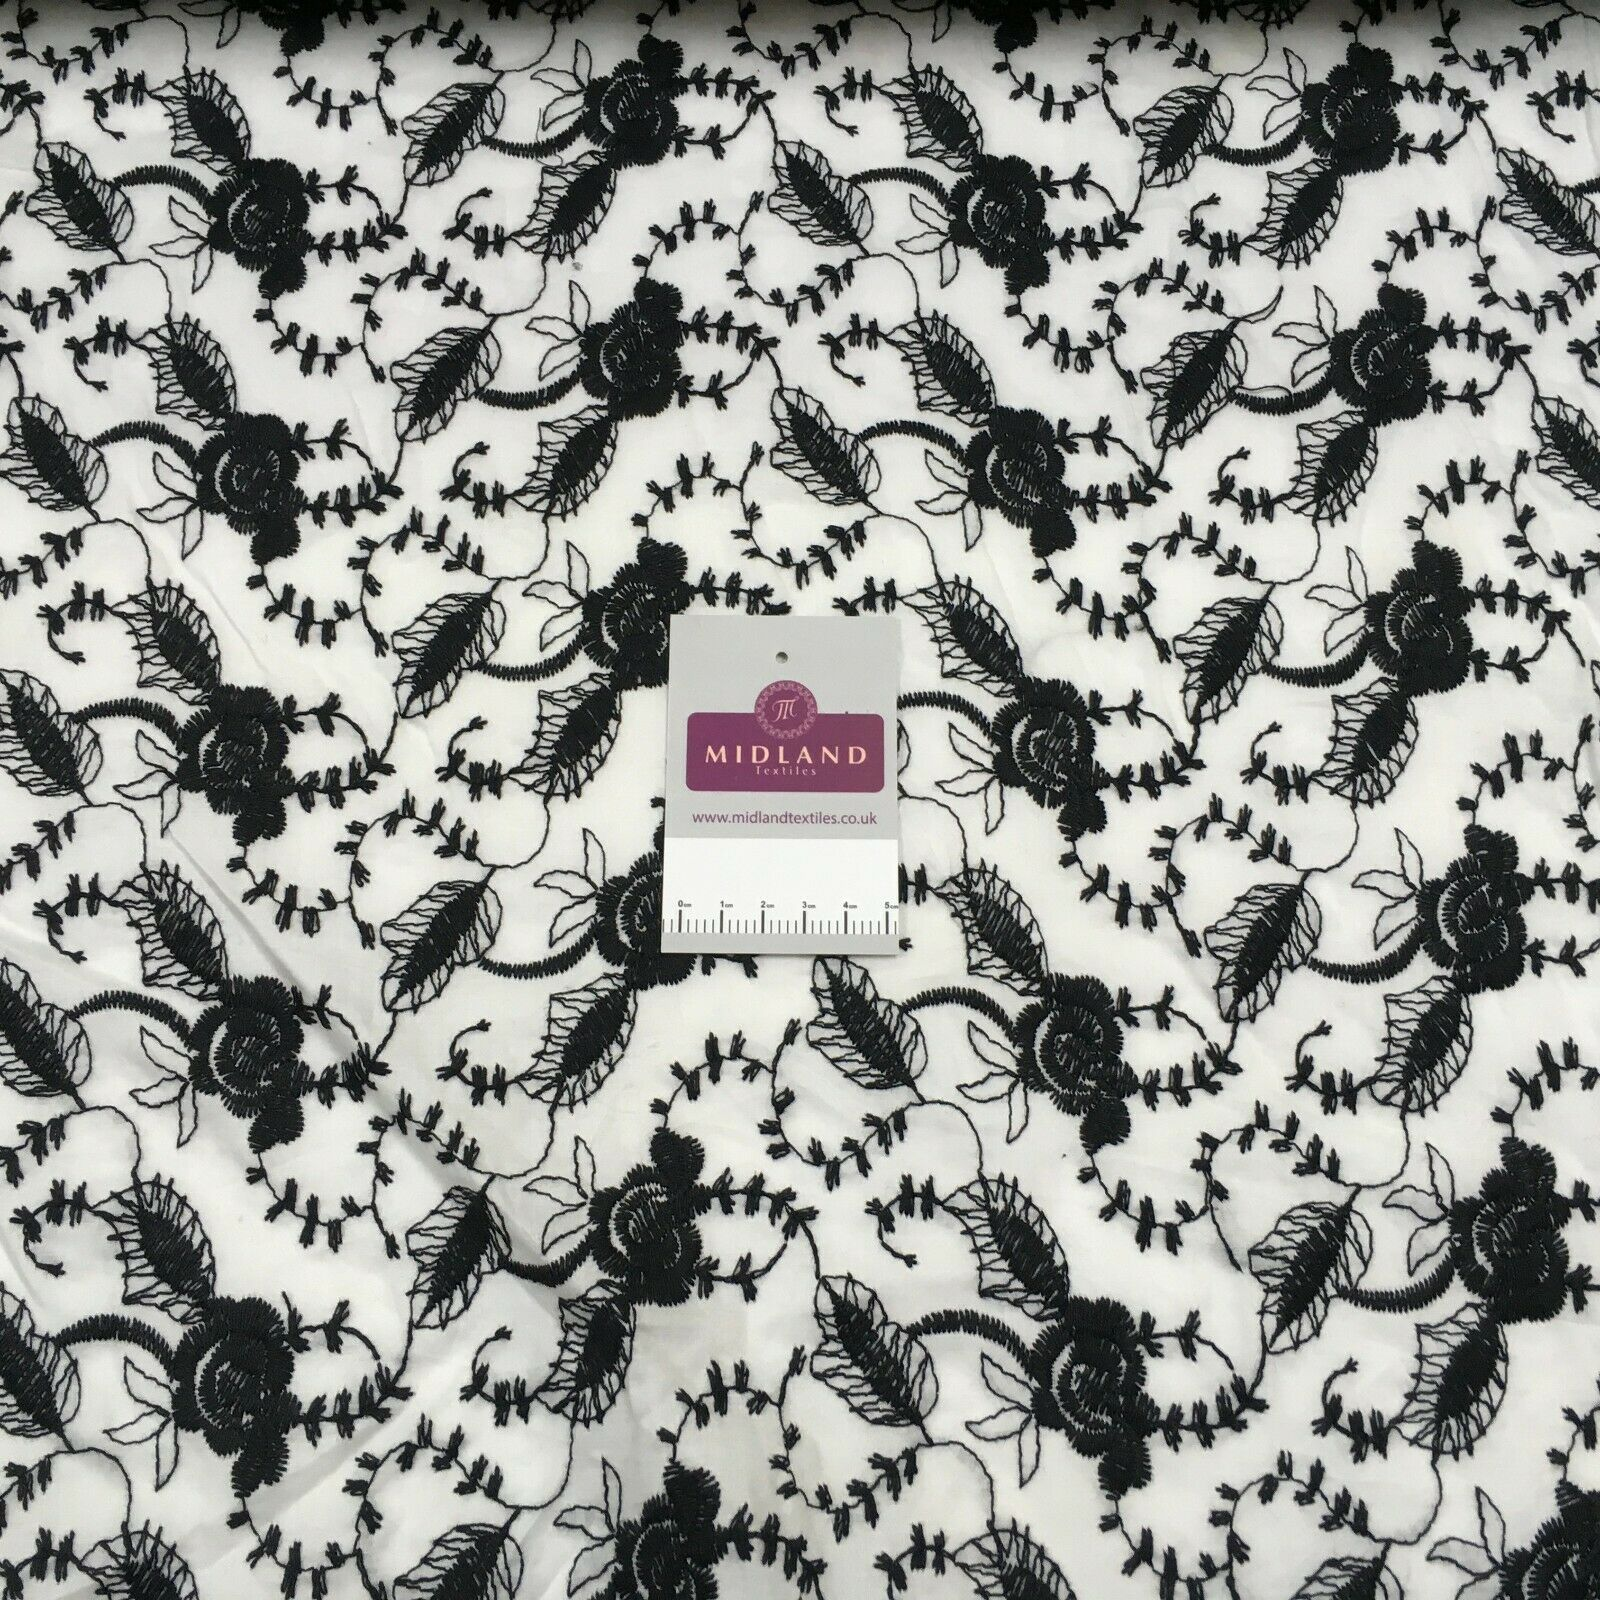 Black white cotton 3d embroidery dress Fabric M1400-28 Mtex